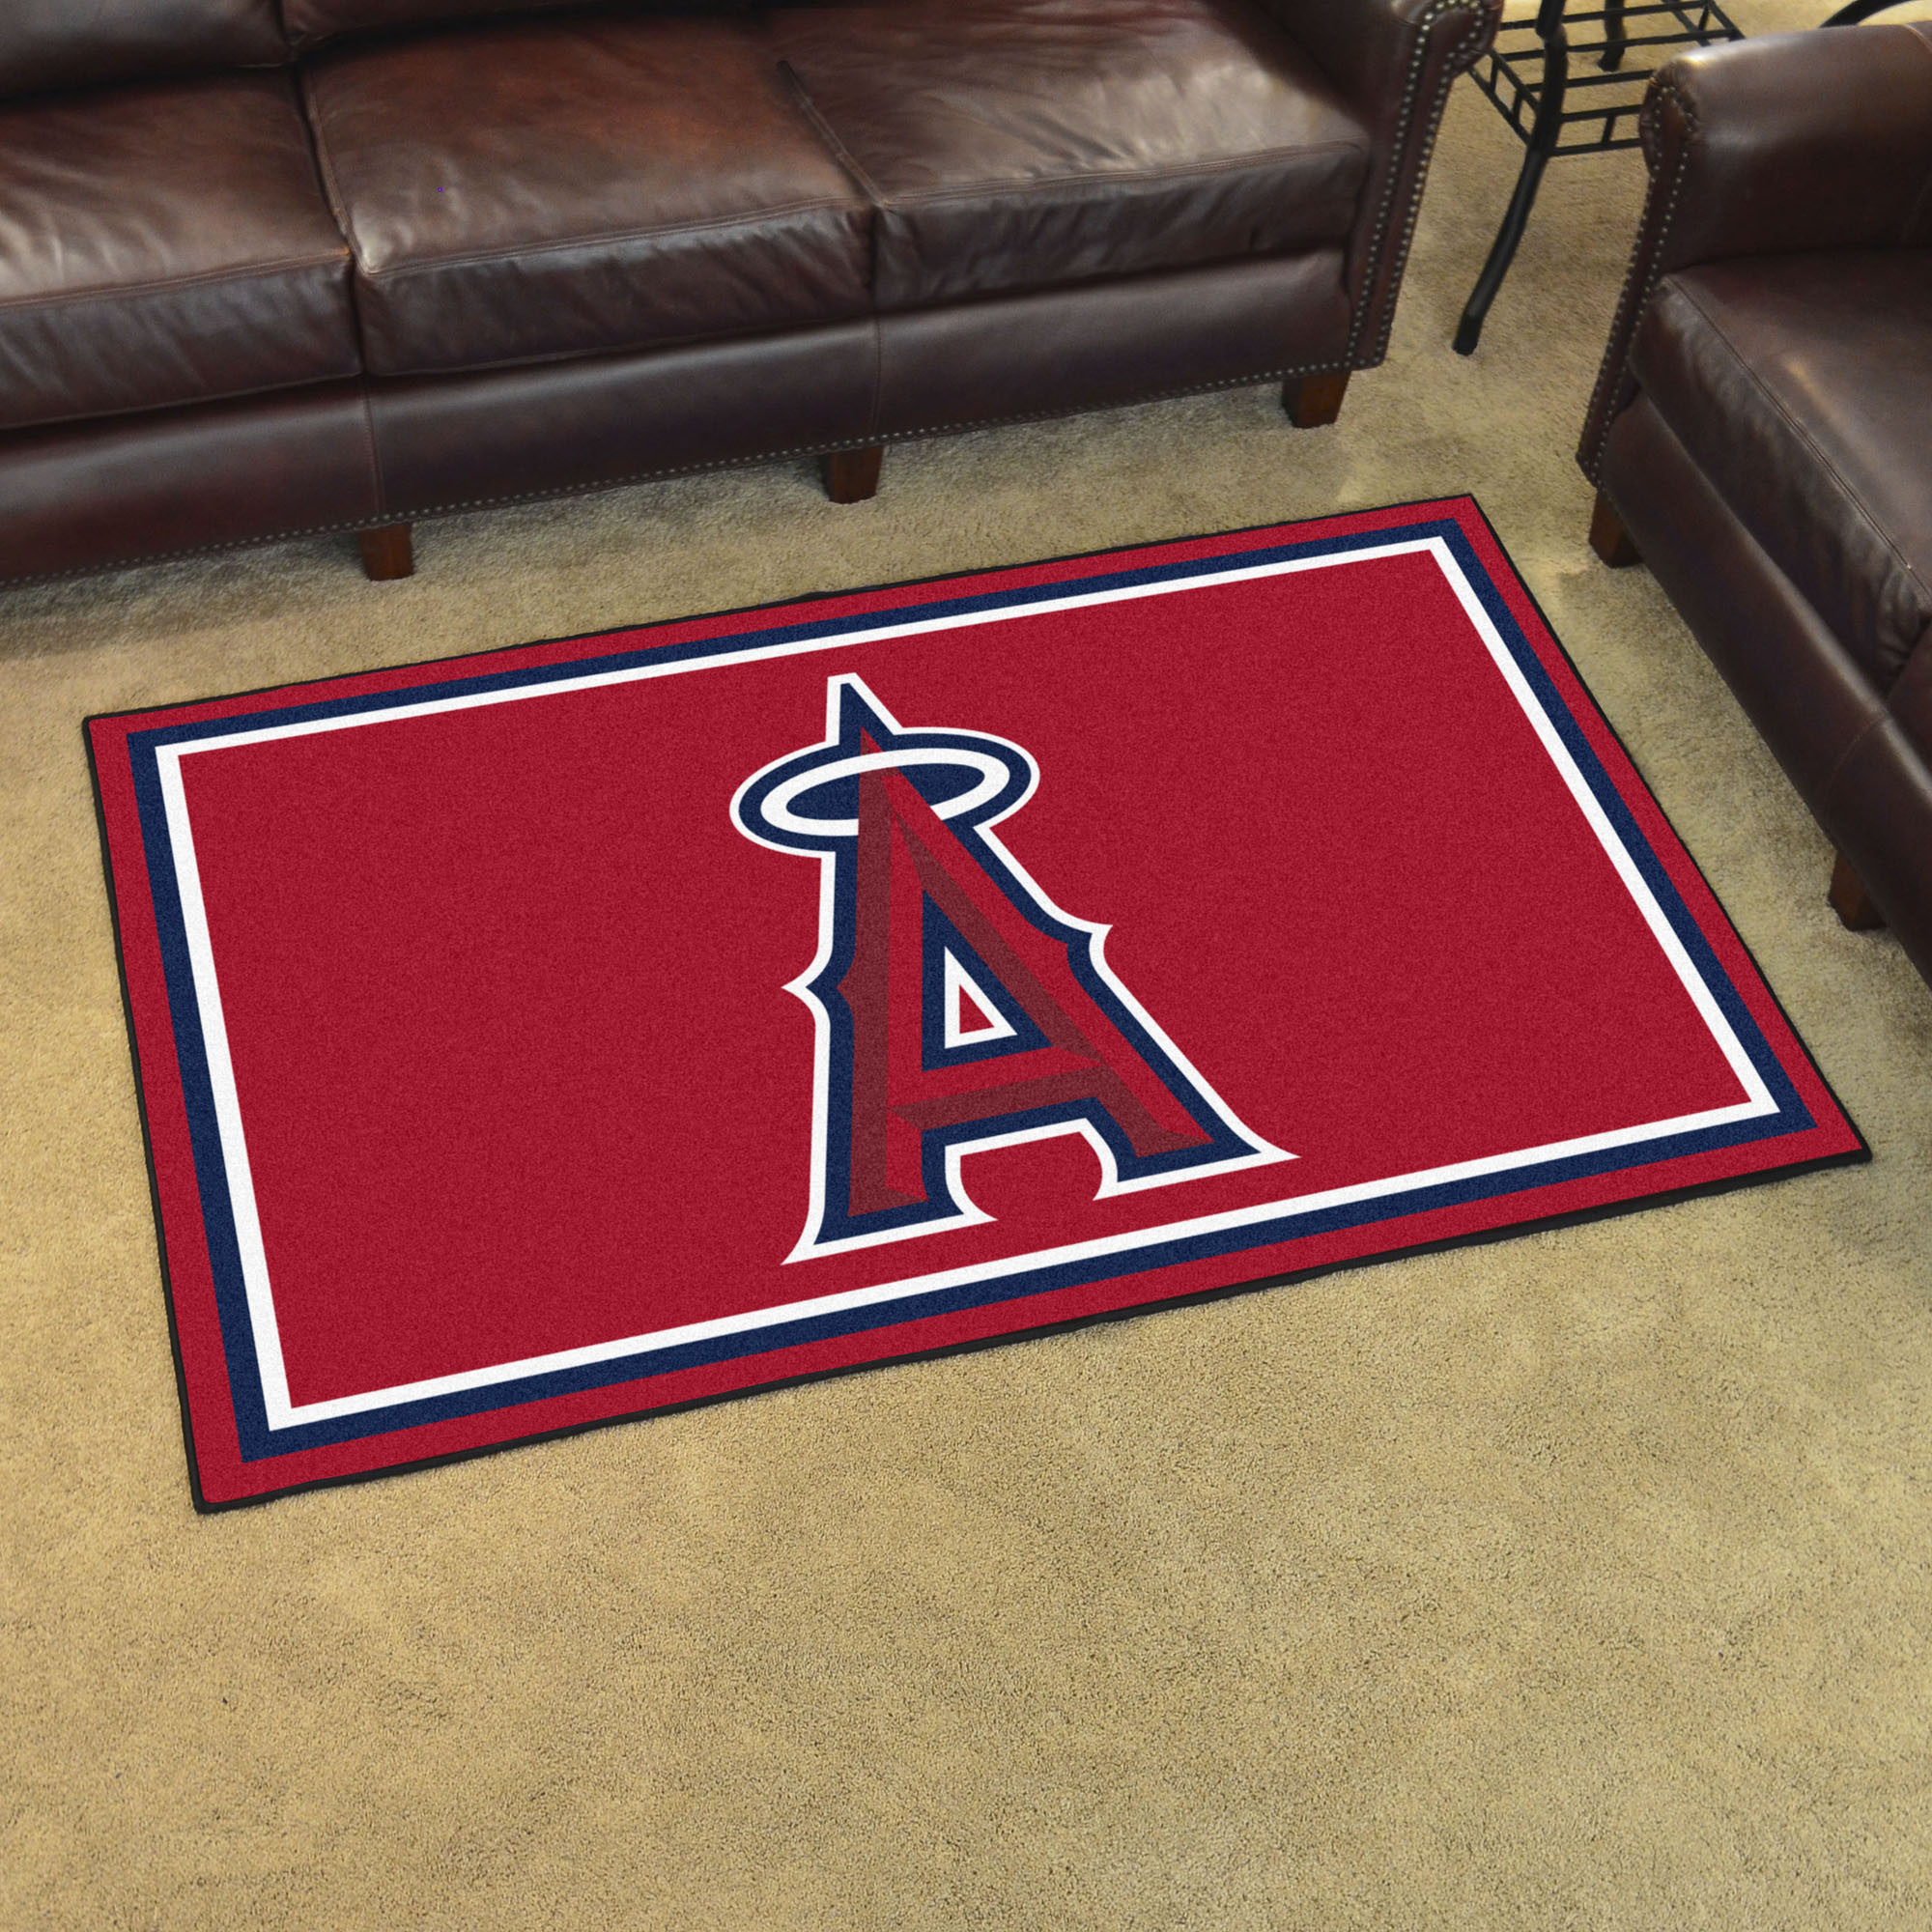 Los Angeles Angels 4x6 Area Rug